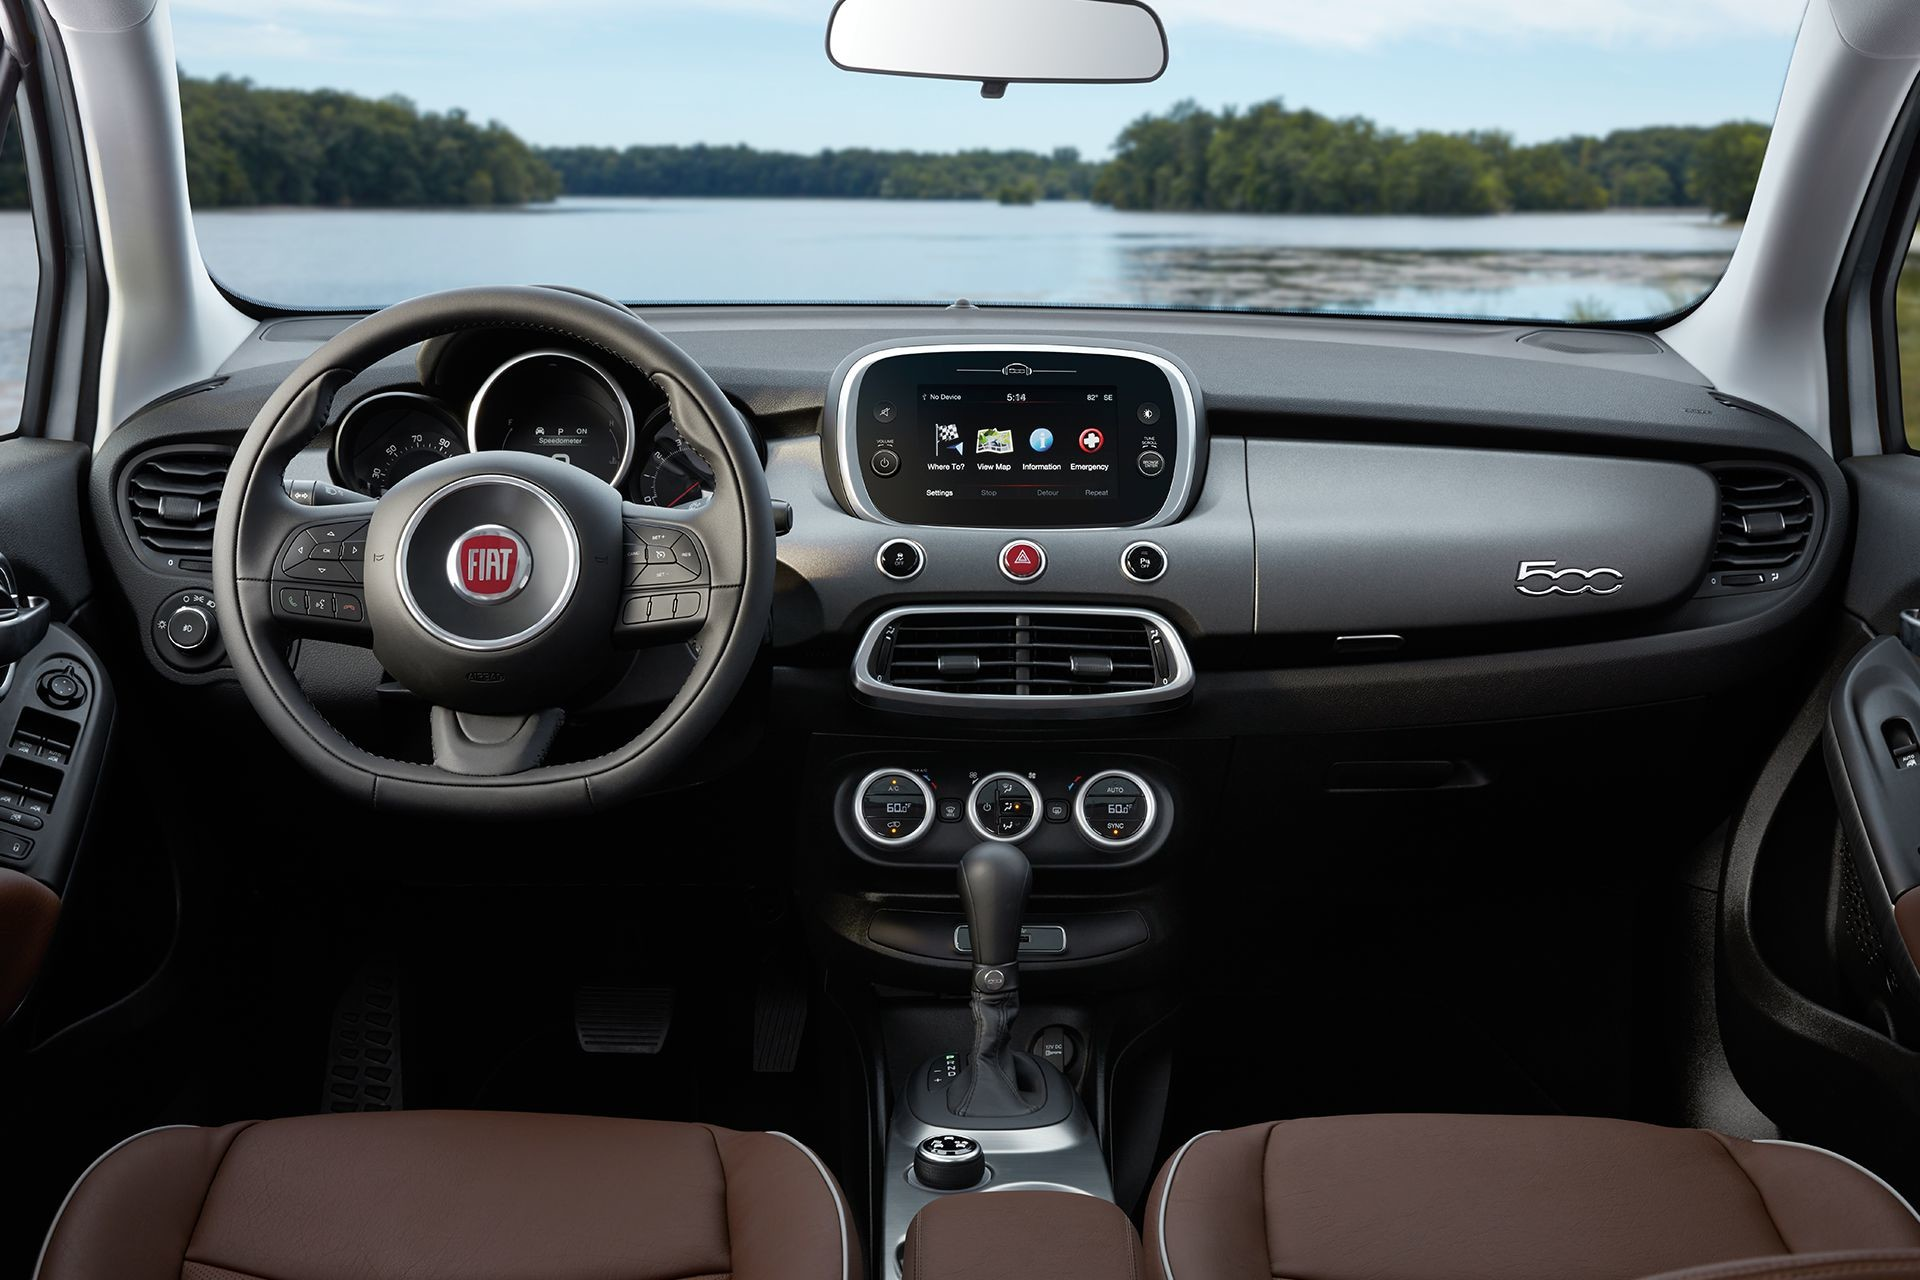 2018 Fiat 500X crossover interior with 7-inch touchscreen